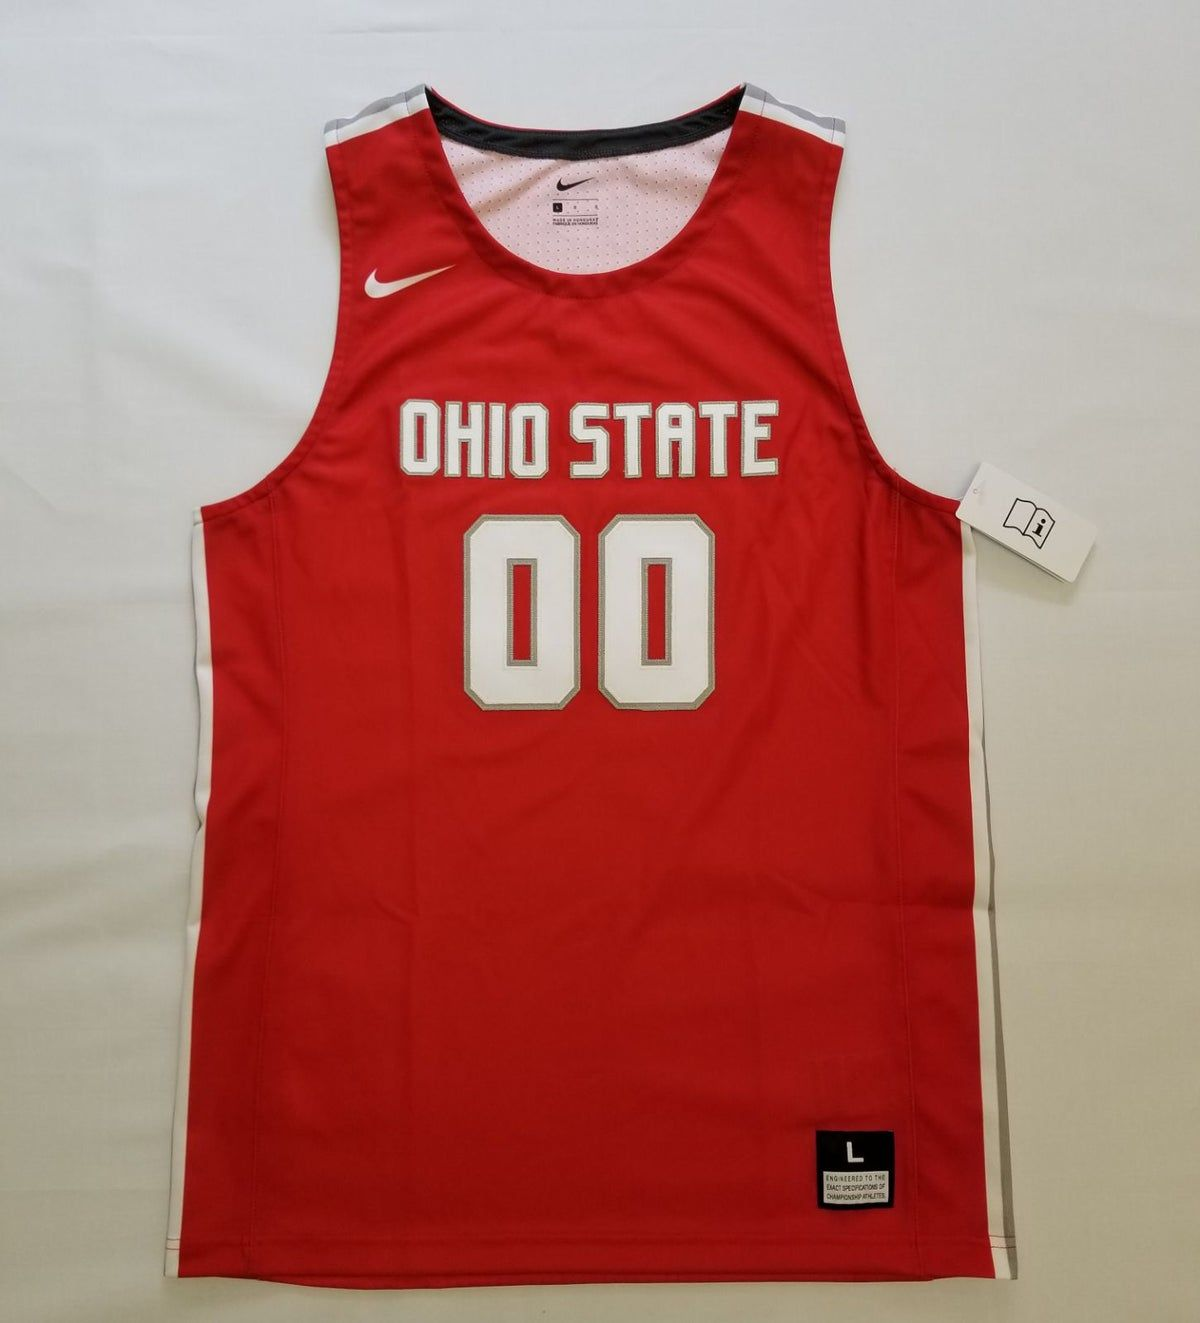 Ohio State Nike Basketball Jersey.